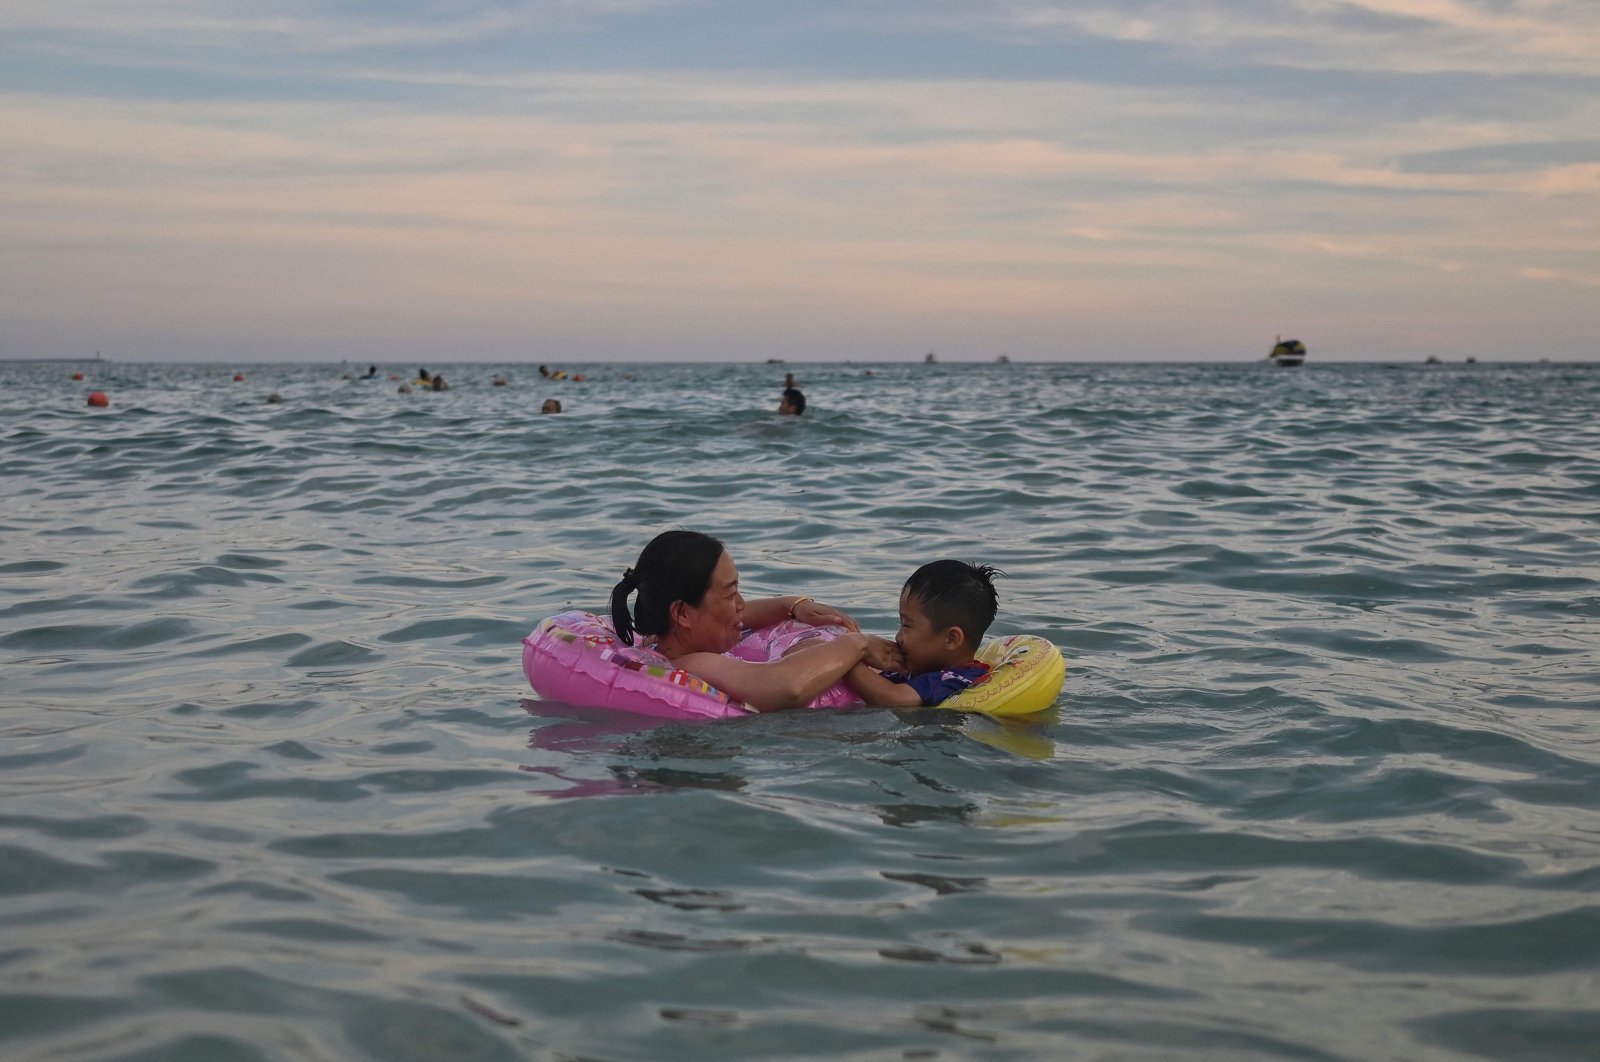 A woman and a child swim at Dadonghai beach in Sanya on China's tropical Hainan Island on July 18, 2021. (AFP Photo)